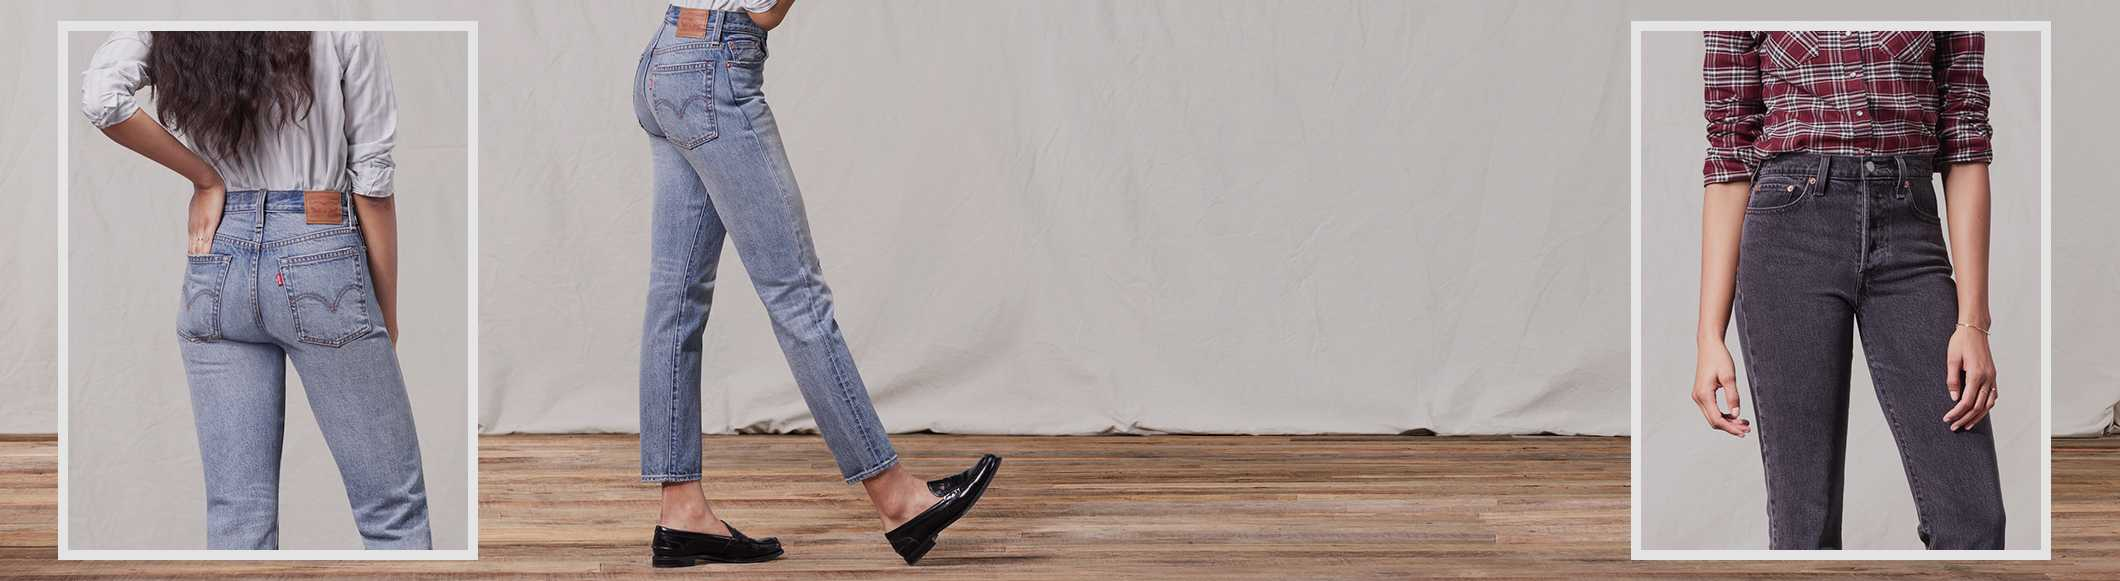 803deb47 Levi's Wedgie Fit Jeans - Shop the Iconic Wedgie Jean | Levi's® US